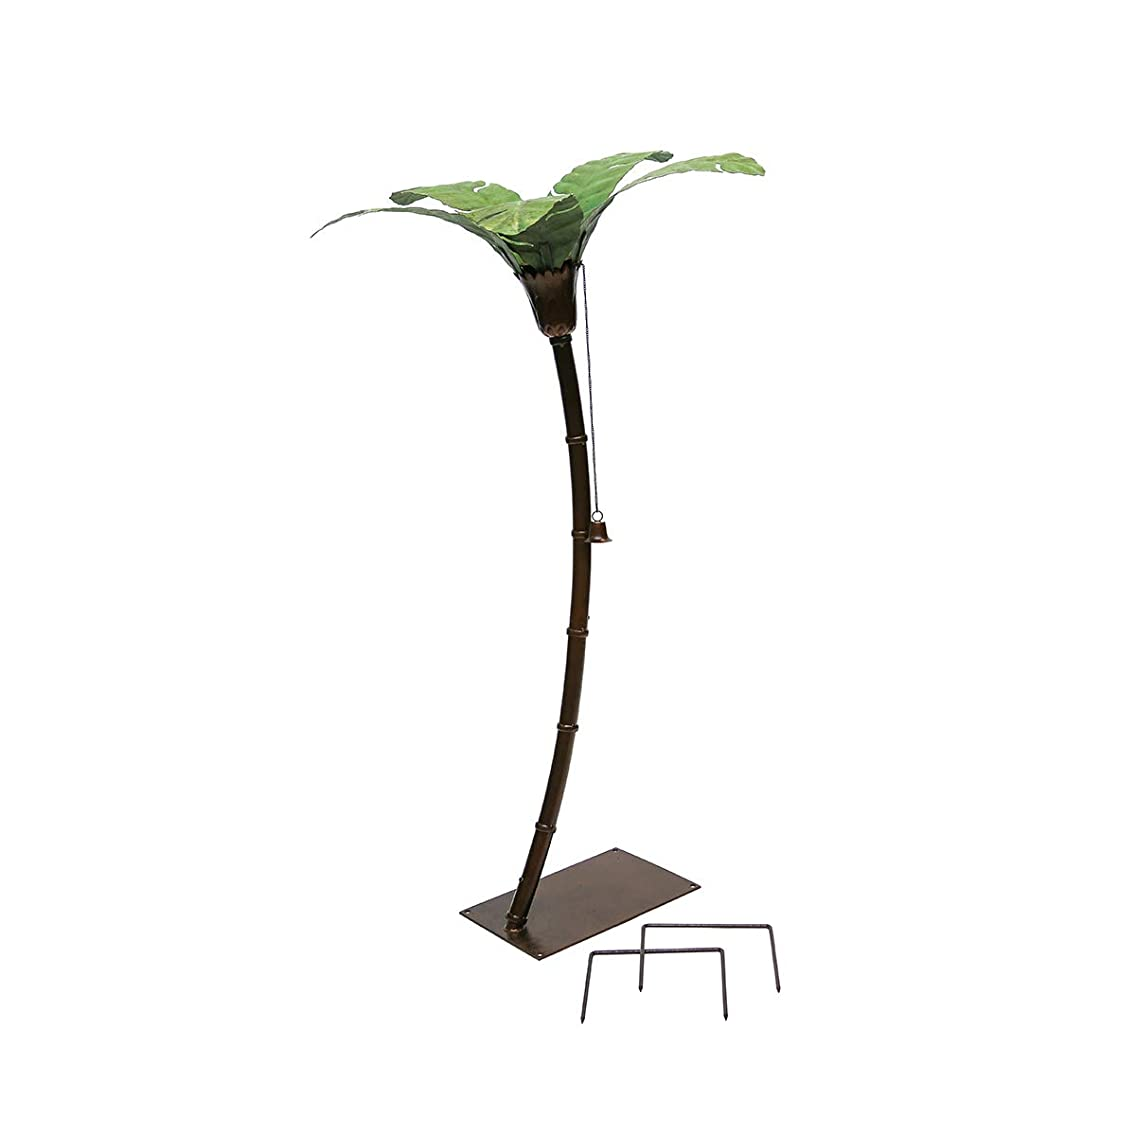 "Desert Steel Asher Palm Tree Garden Torch (58""H) - Metal Lawn Art Torch – Stands 4.8 Ft. Tall"